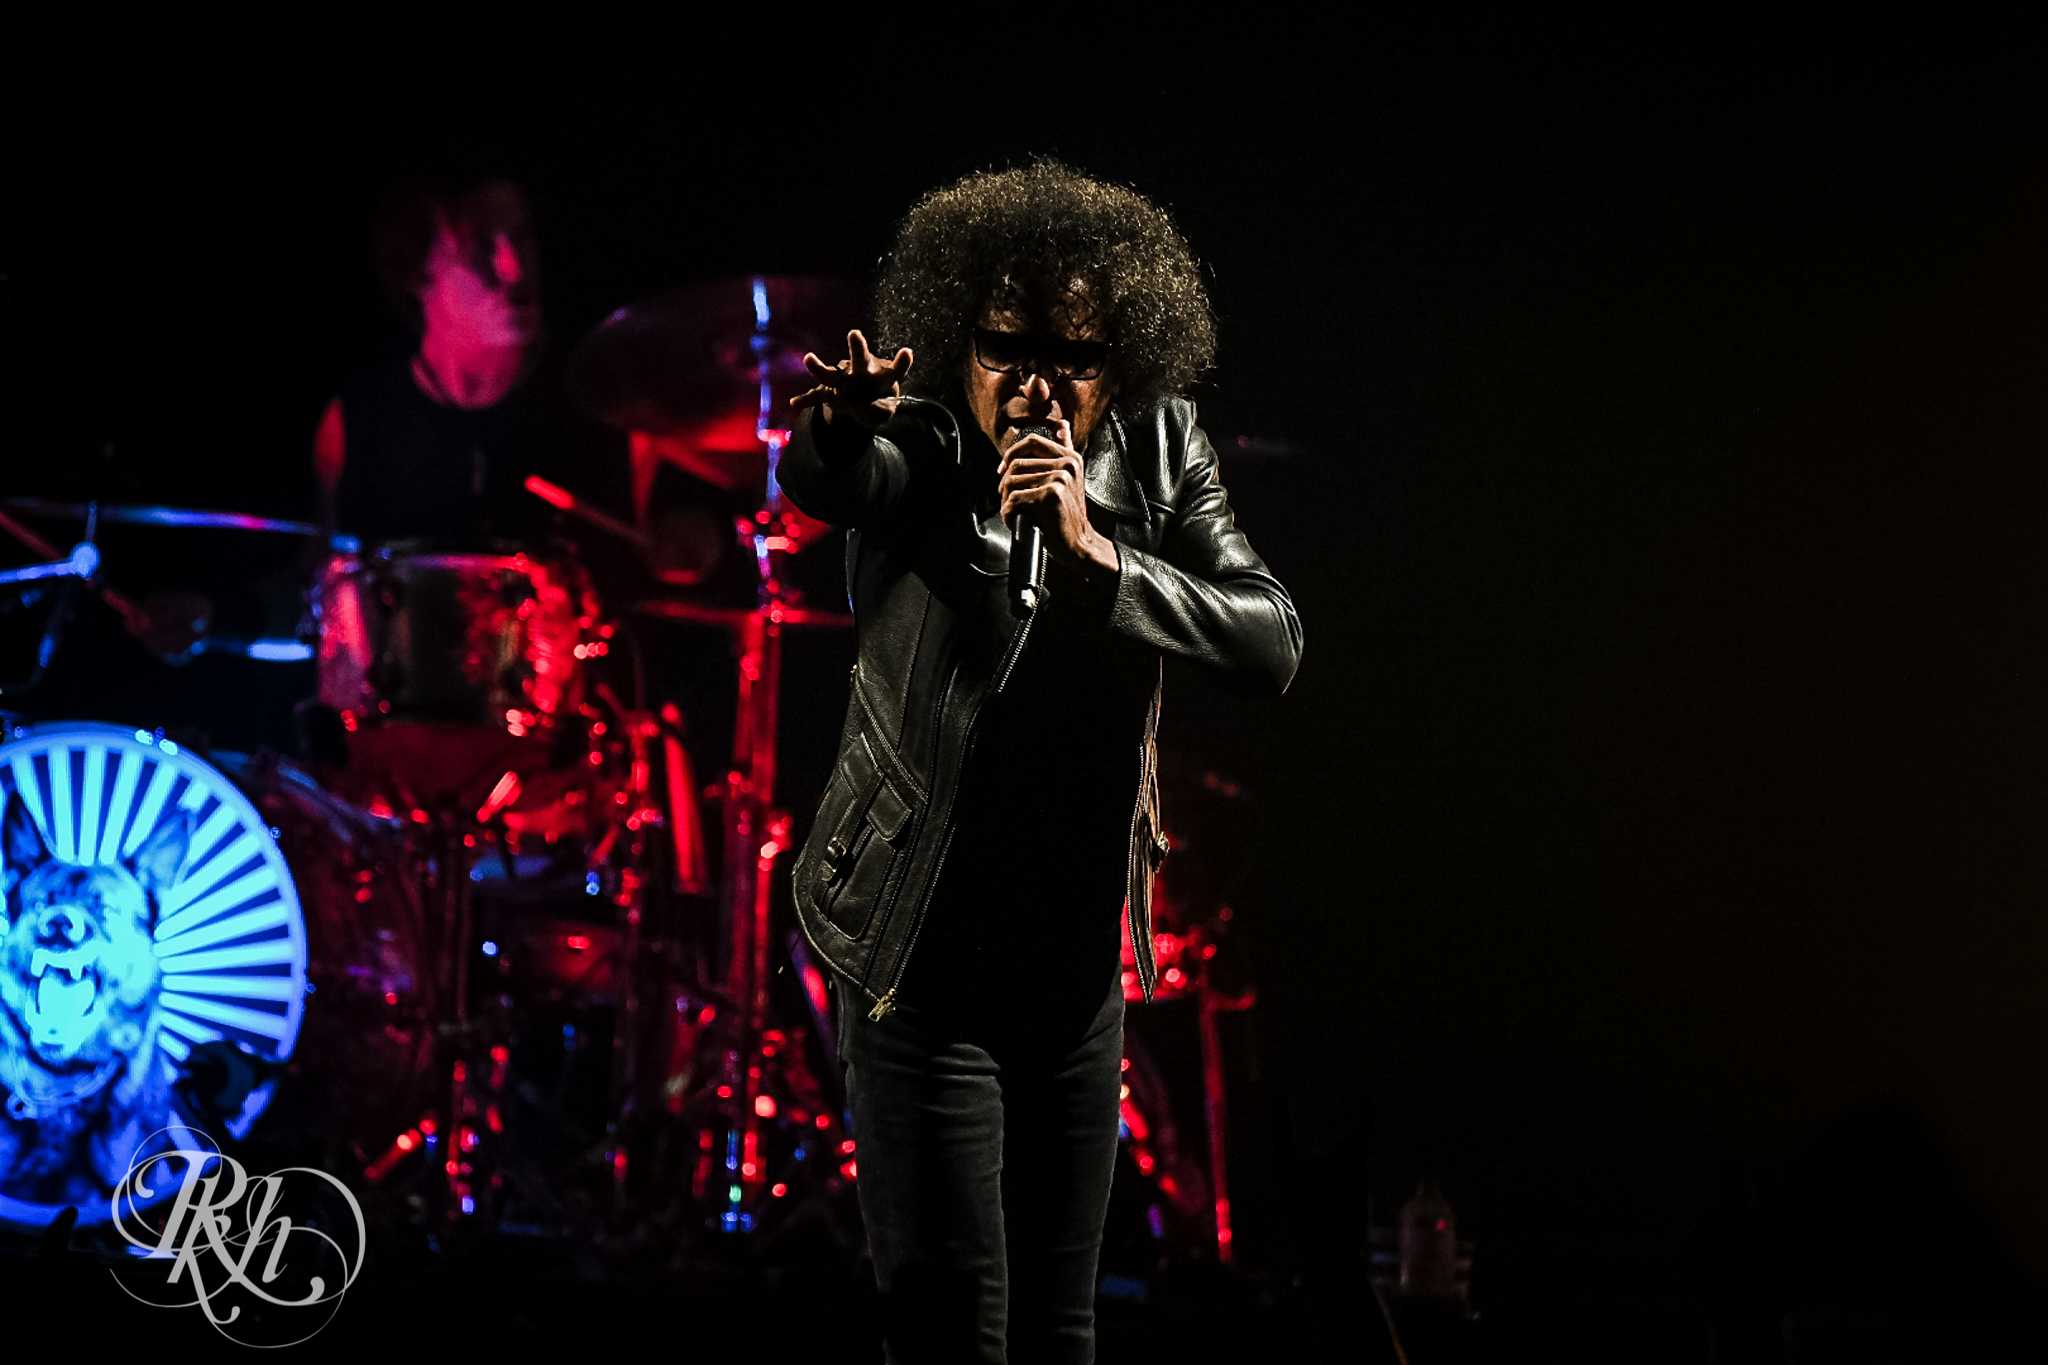 Alice in Chains - RKH Images (1 of 1).jpg